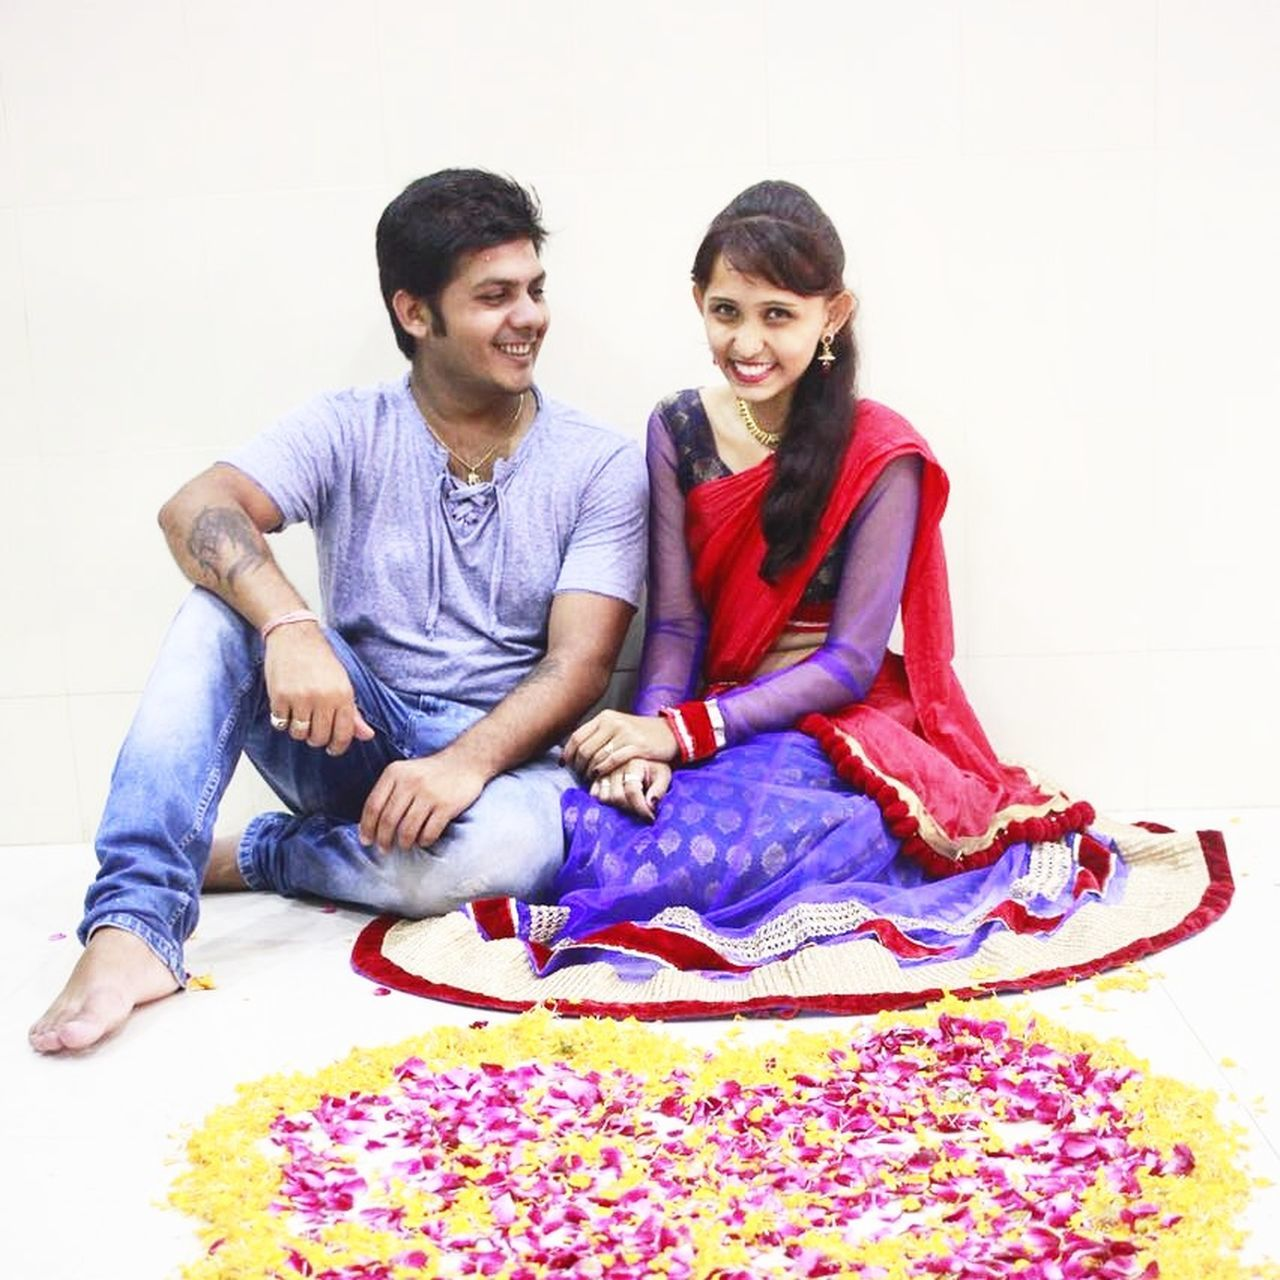 two people, togetherness, happiness, smiling, full length, casual clothing, sitting, young adult, front view, love, young men, bonding, young women, home interior, beautiful woman, sari, white background, portrait, real people, indoors, cheerful, powder paint, adult, holi, day, people, adults only